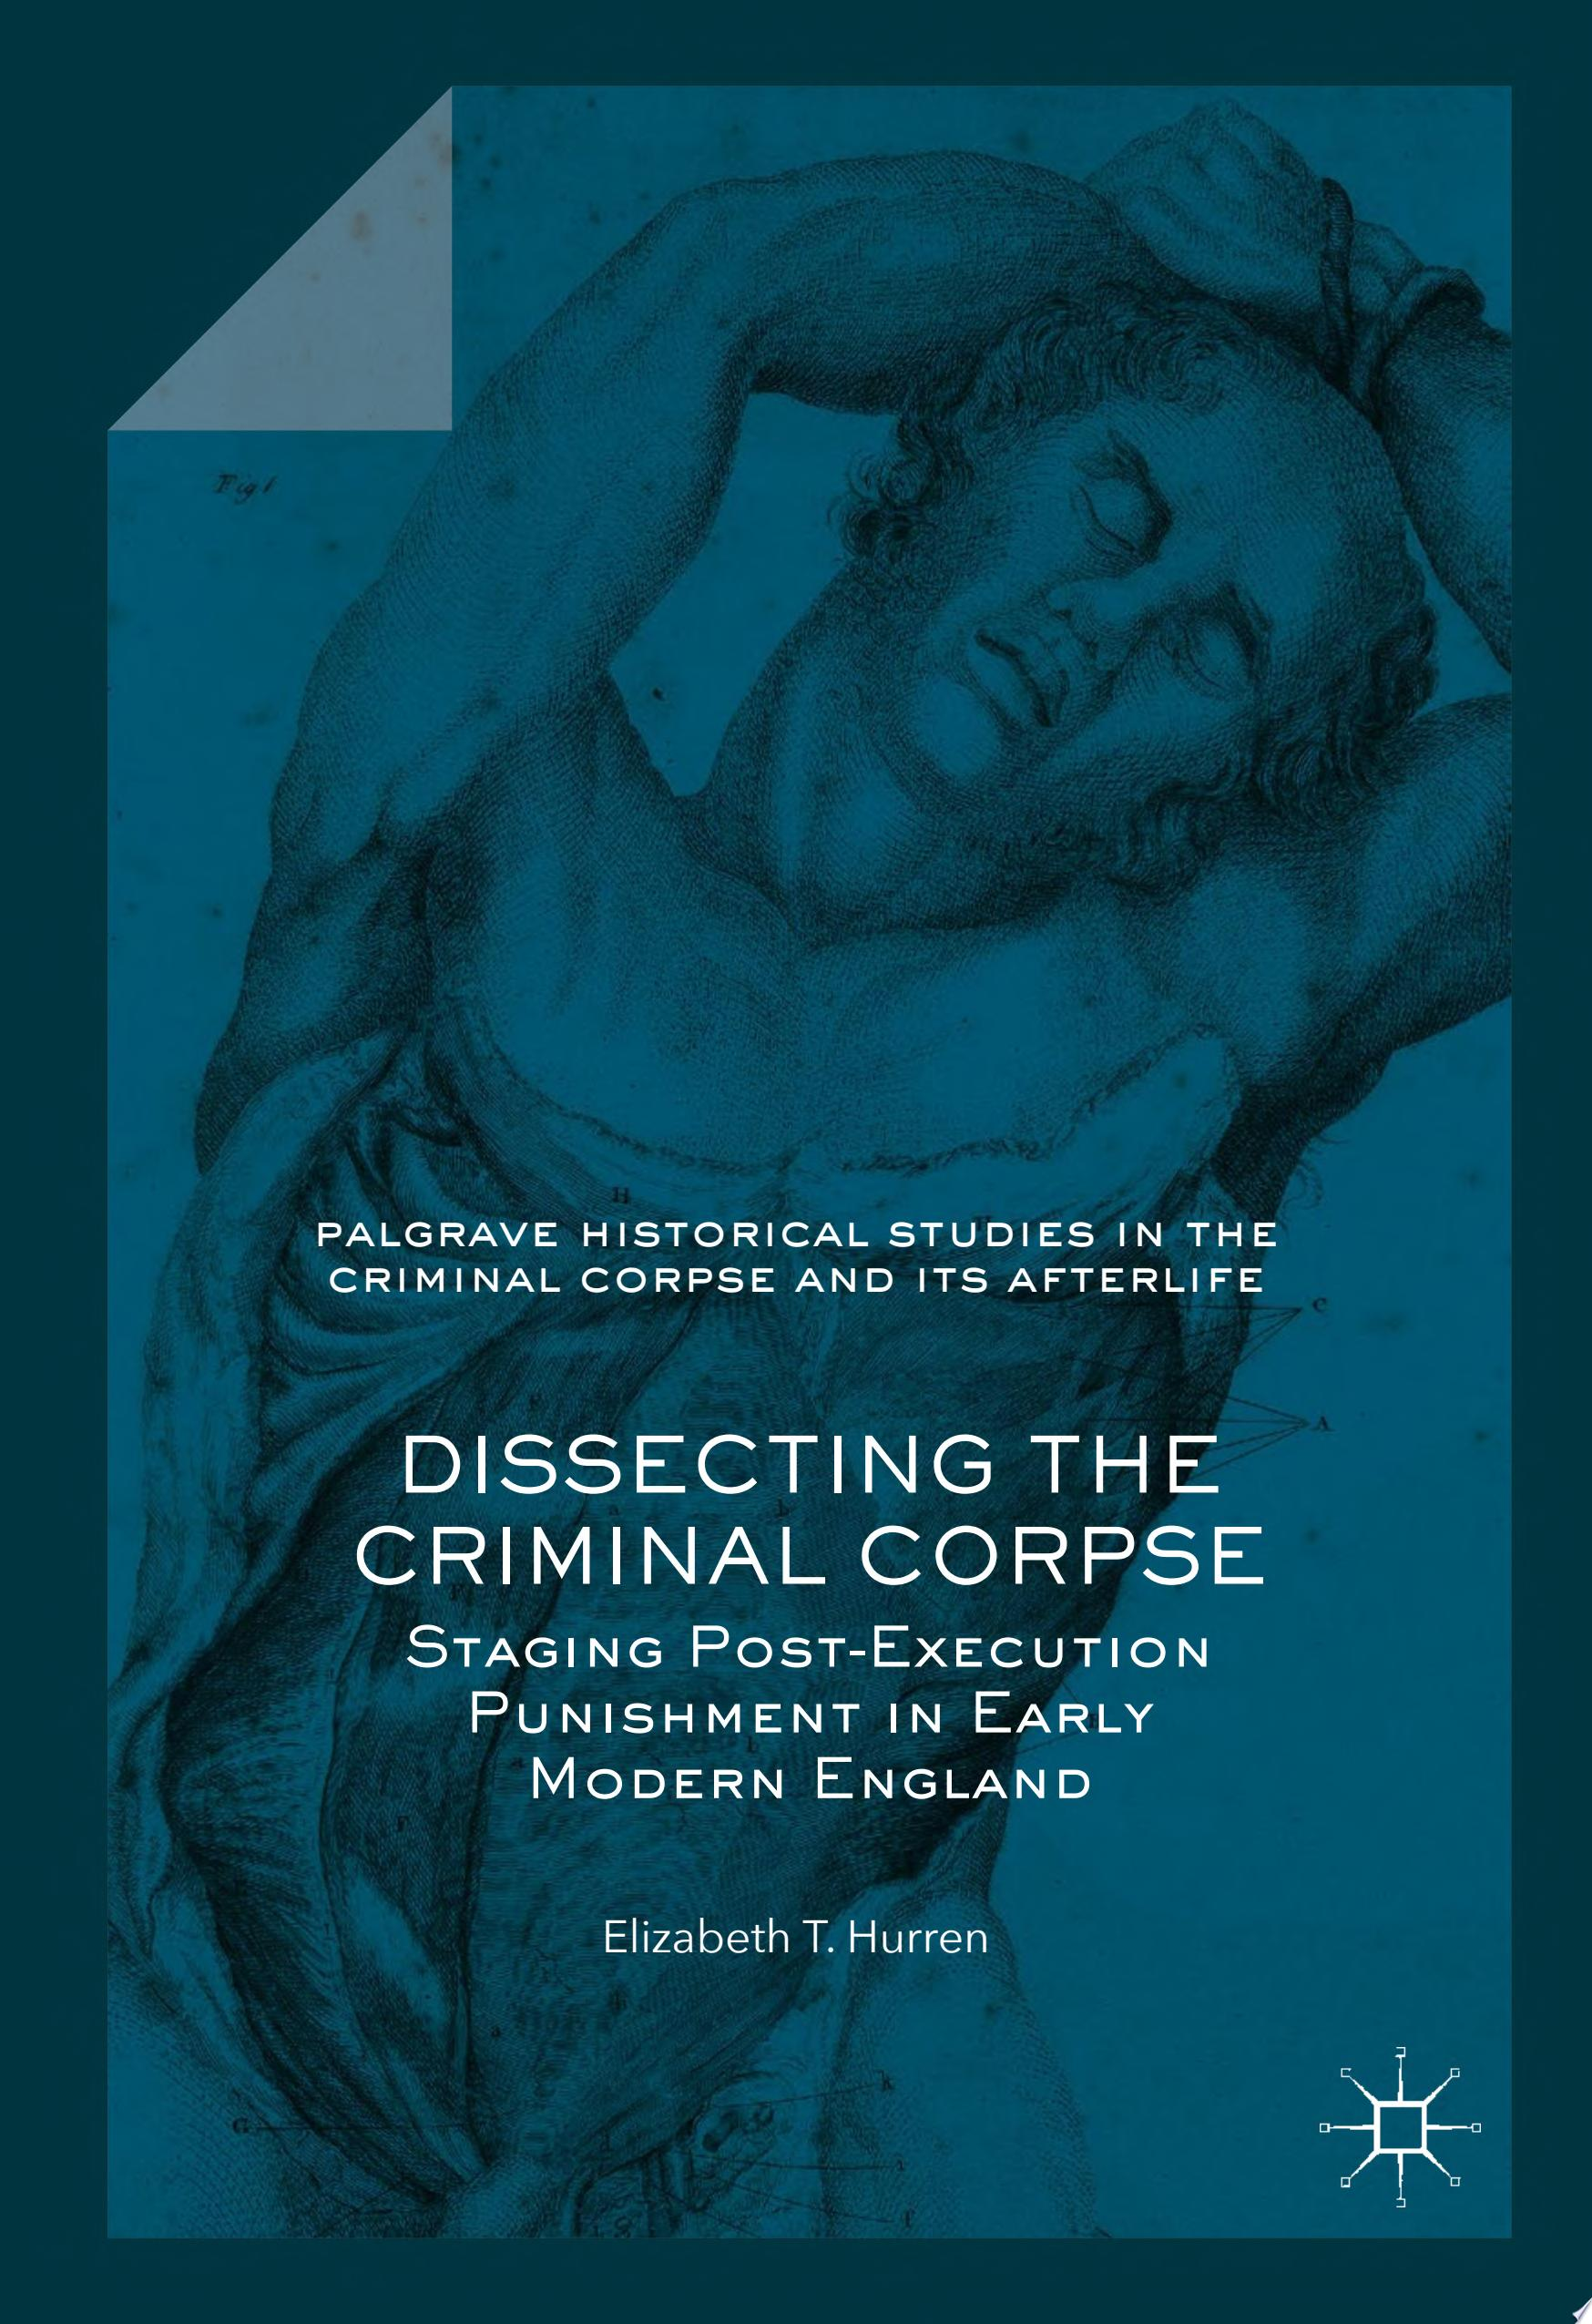 Dissecting the Criminal Corpse